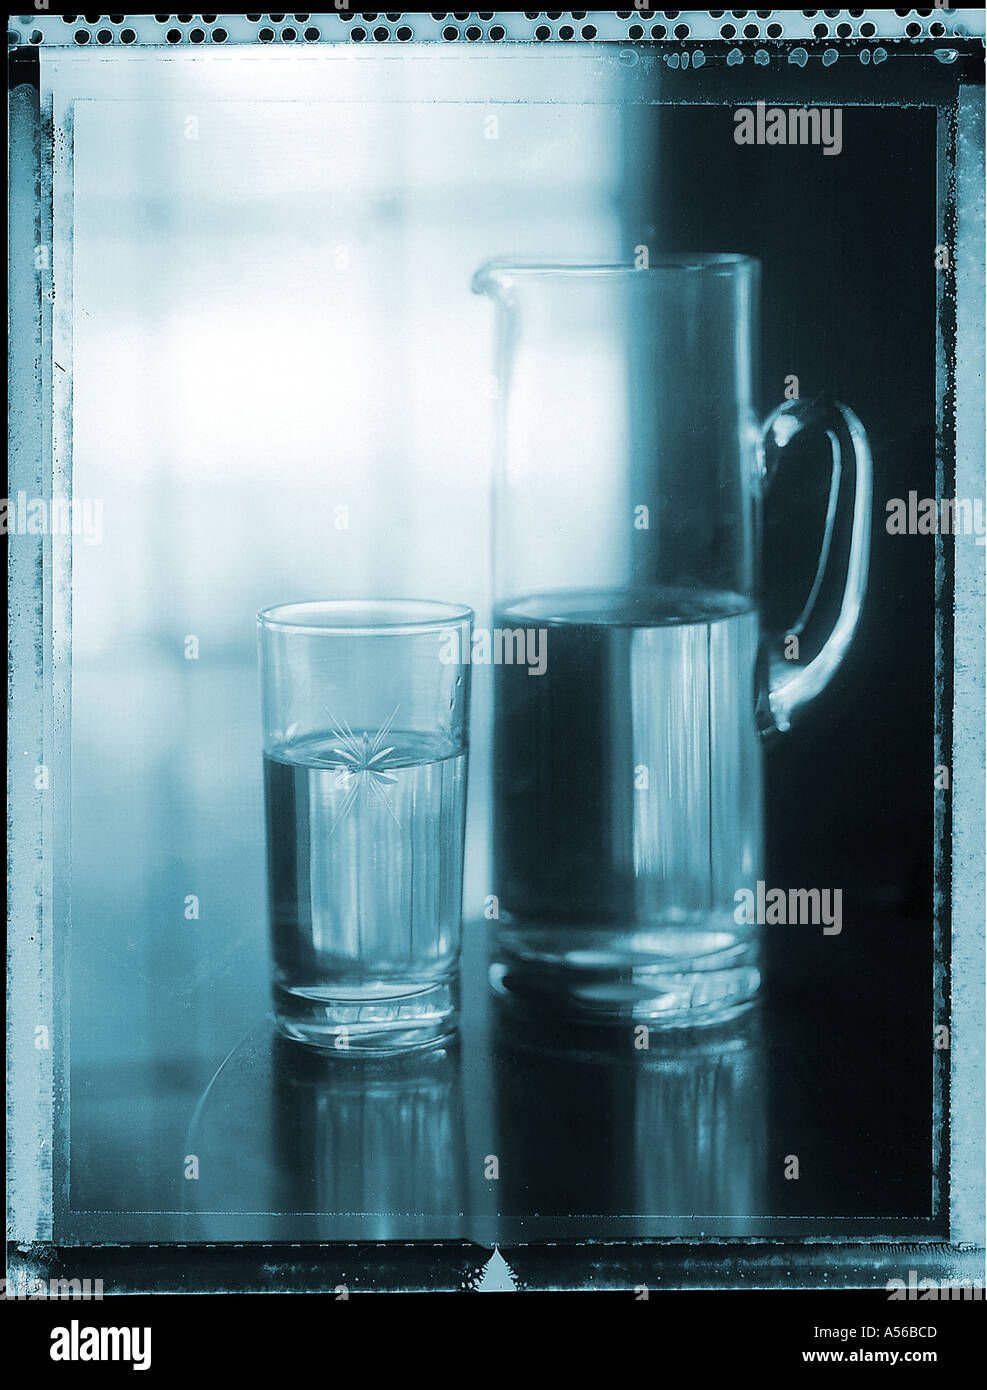 Half full glass of water and pitcher of water on table near window - Stock Image